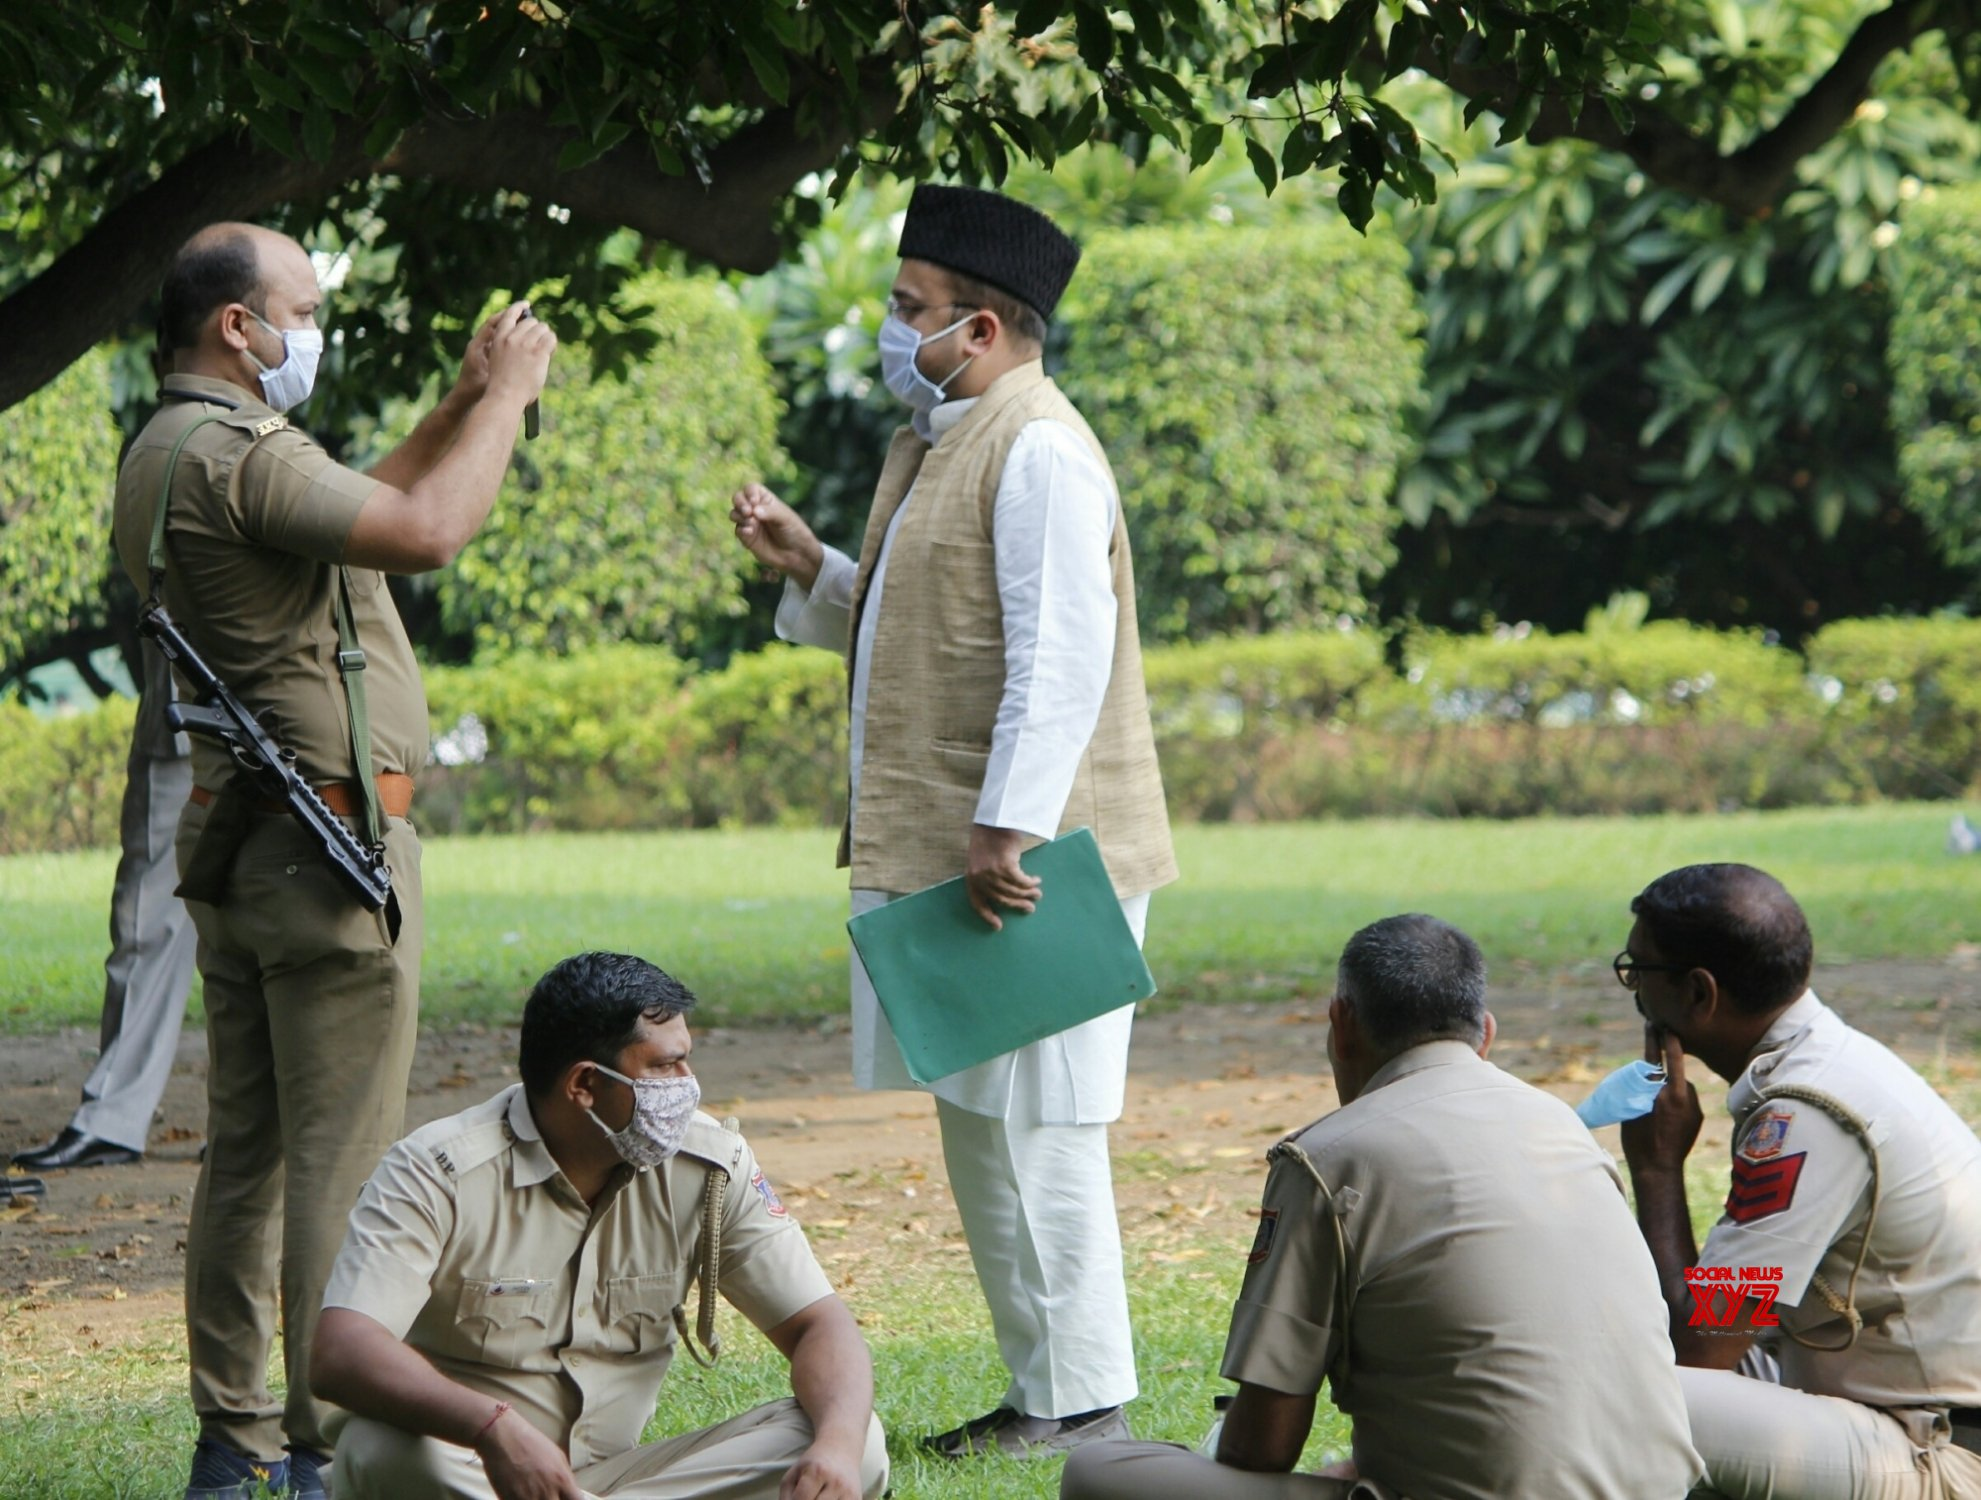 New Delhi: Police constable seen making videos of Samajwadi Party worker outside Parliament #Gallery